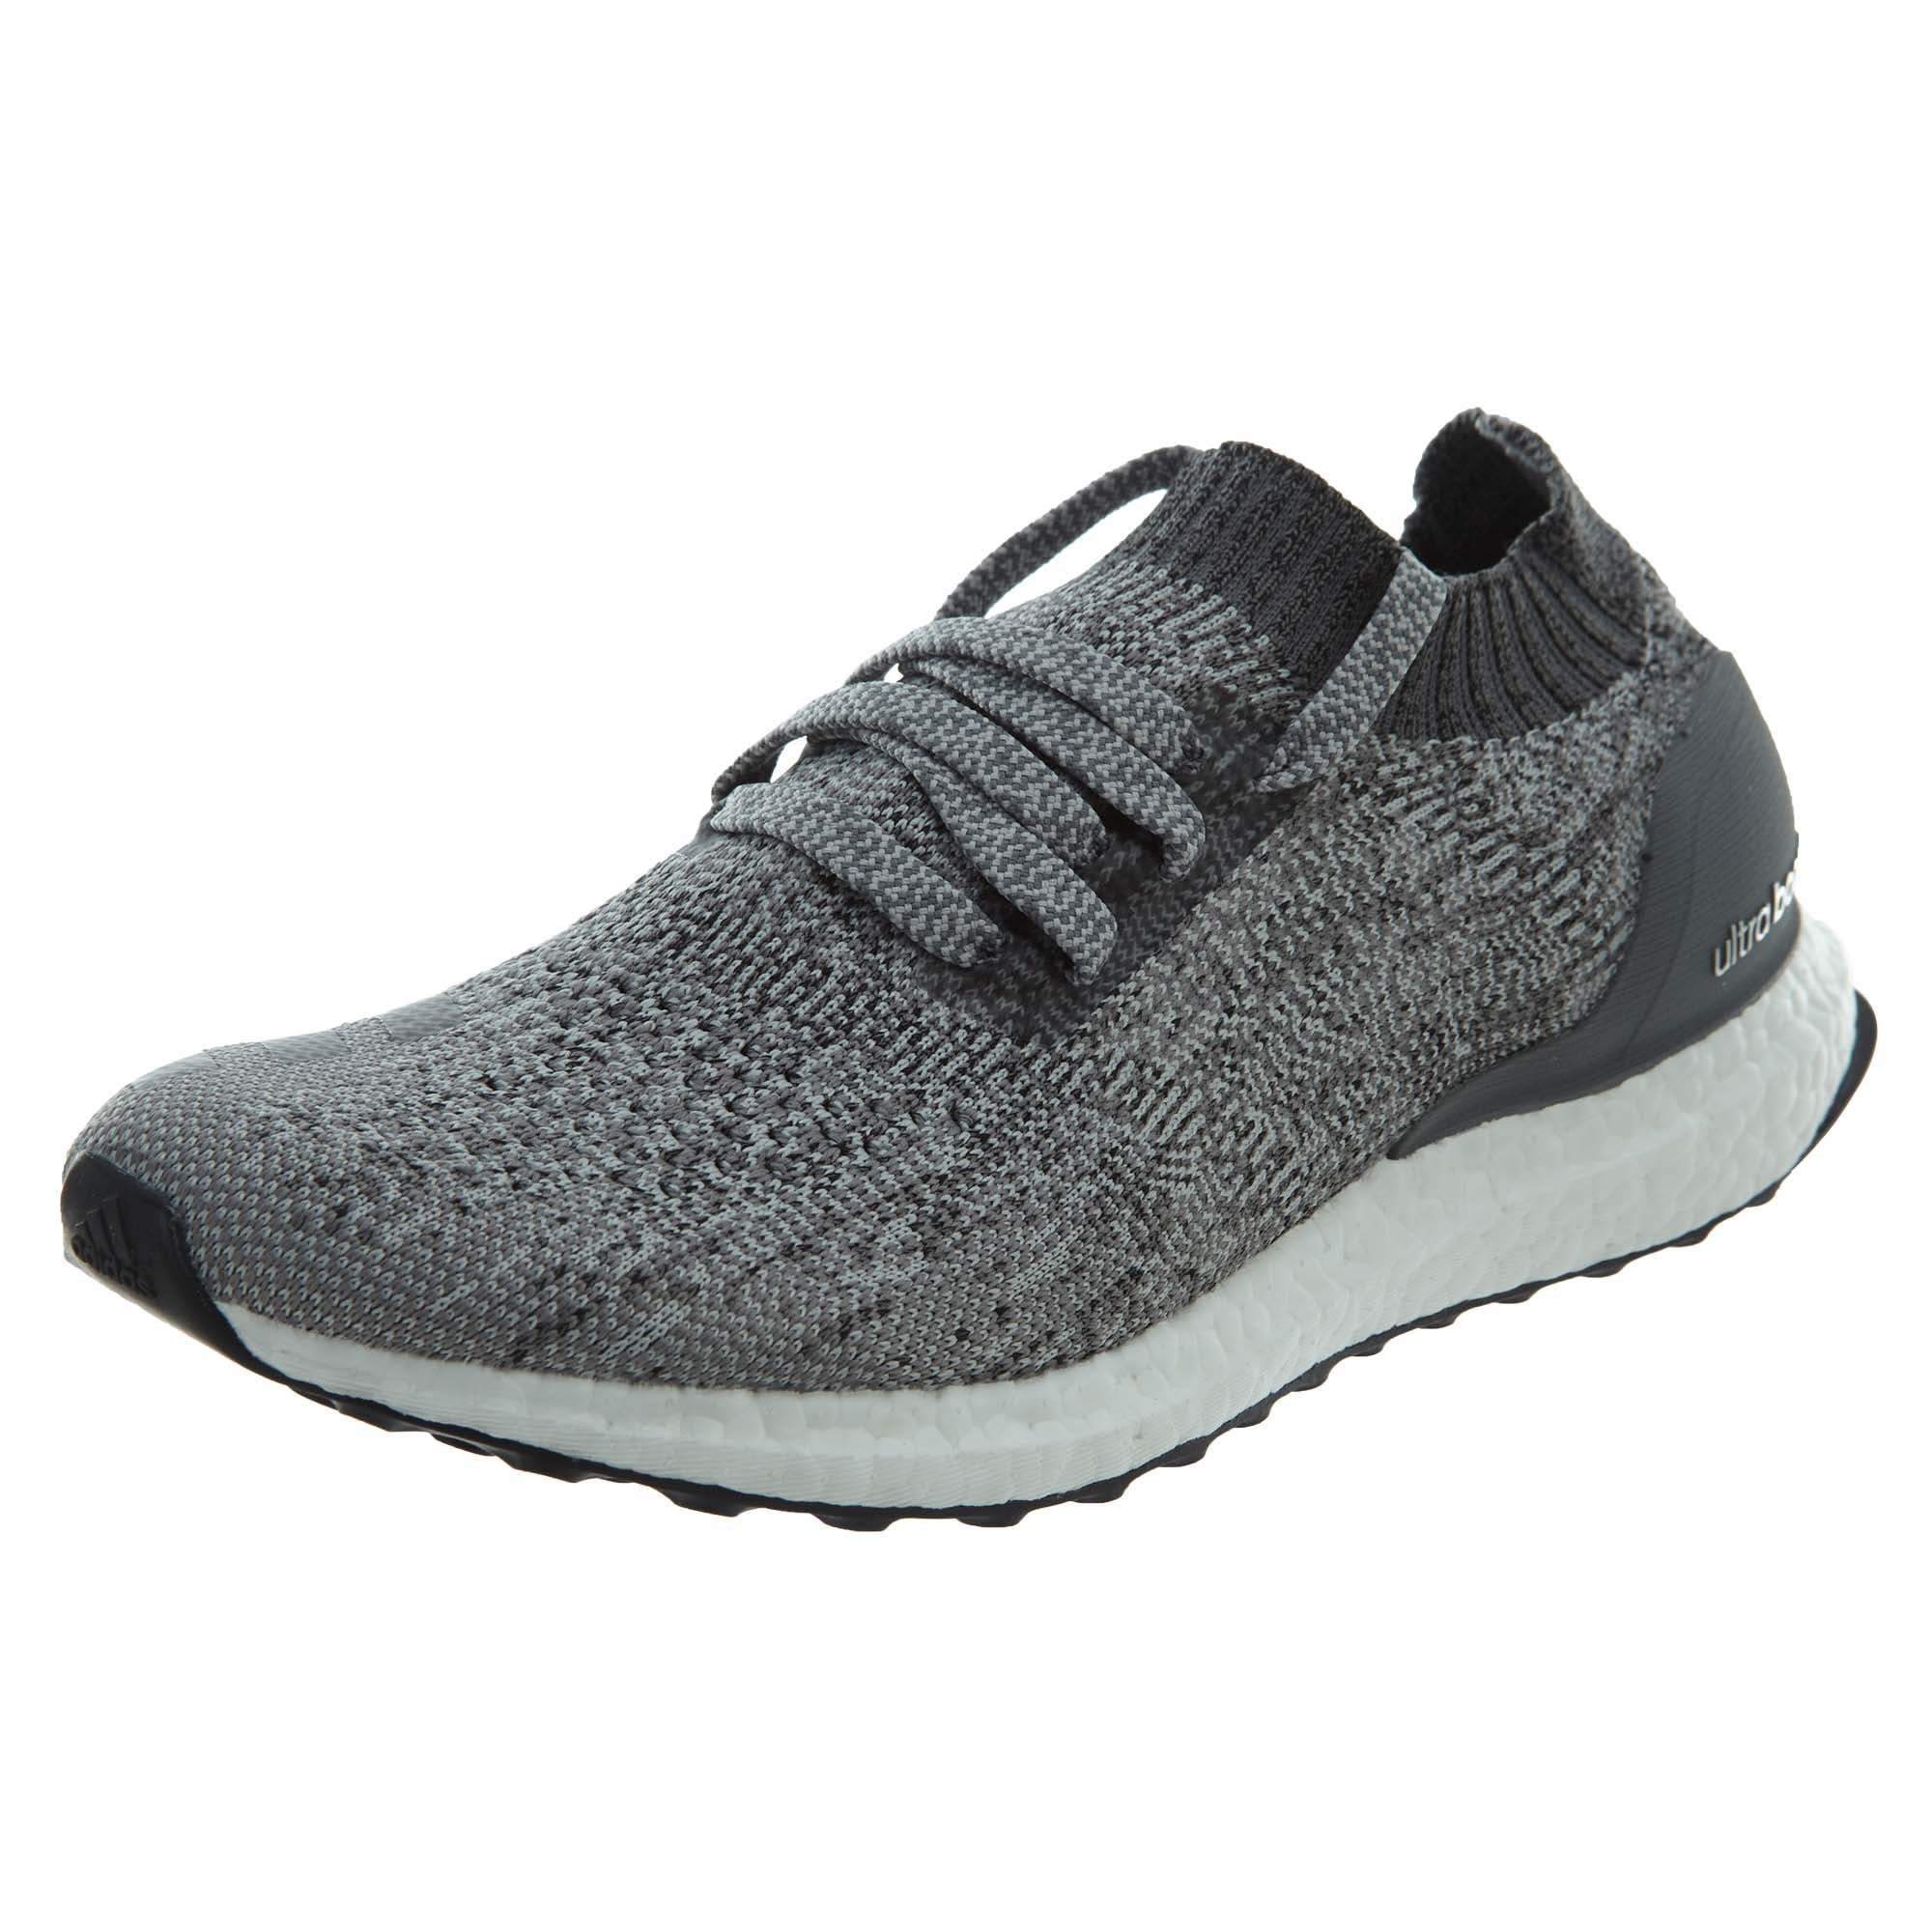 ffbe41d393003 Adidas Ultra Boost Uncaged Mens Style   Da9159 – TheEagleShoes